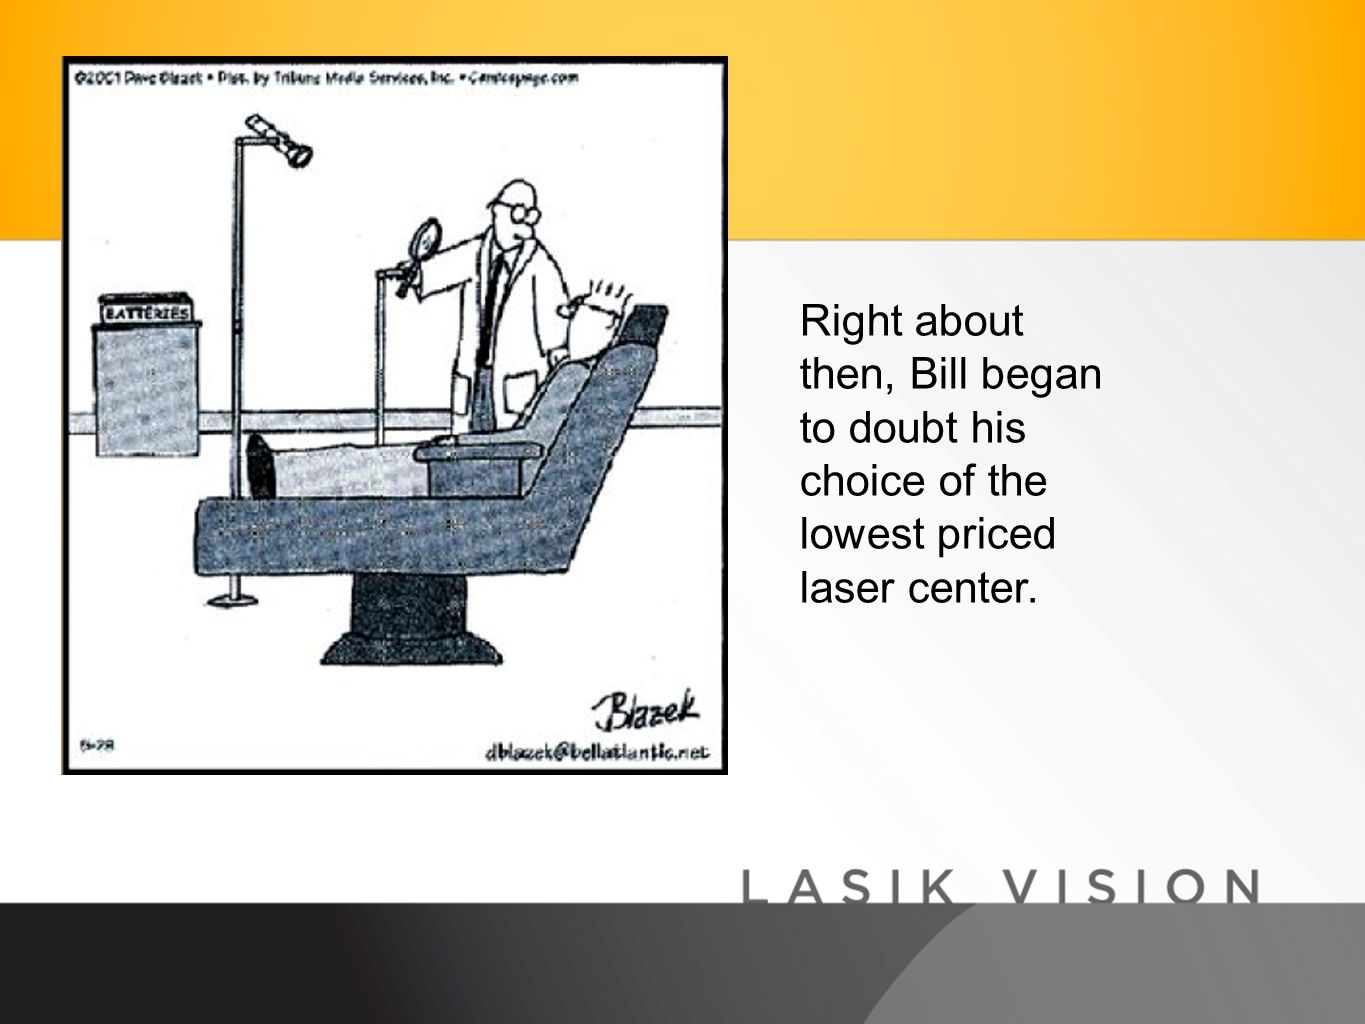 Right about then, Bill began to doubt his choice of the lowest priced laser center.